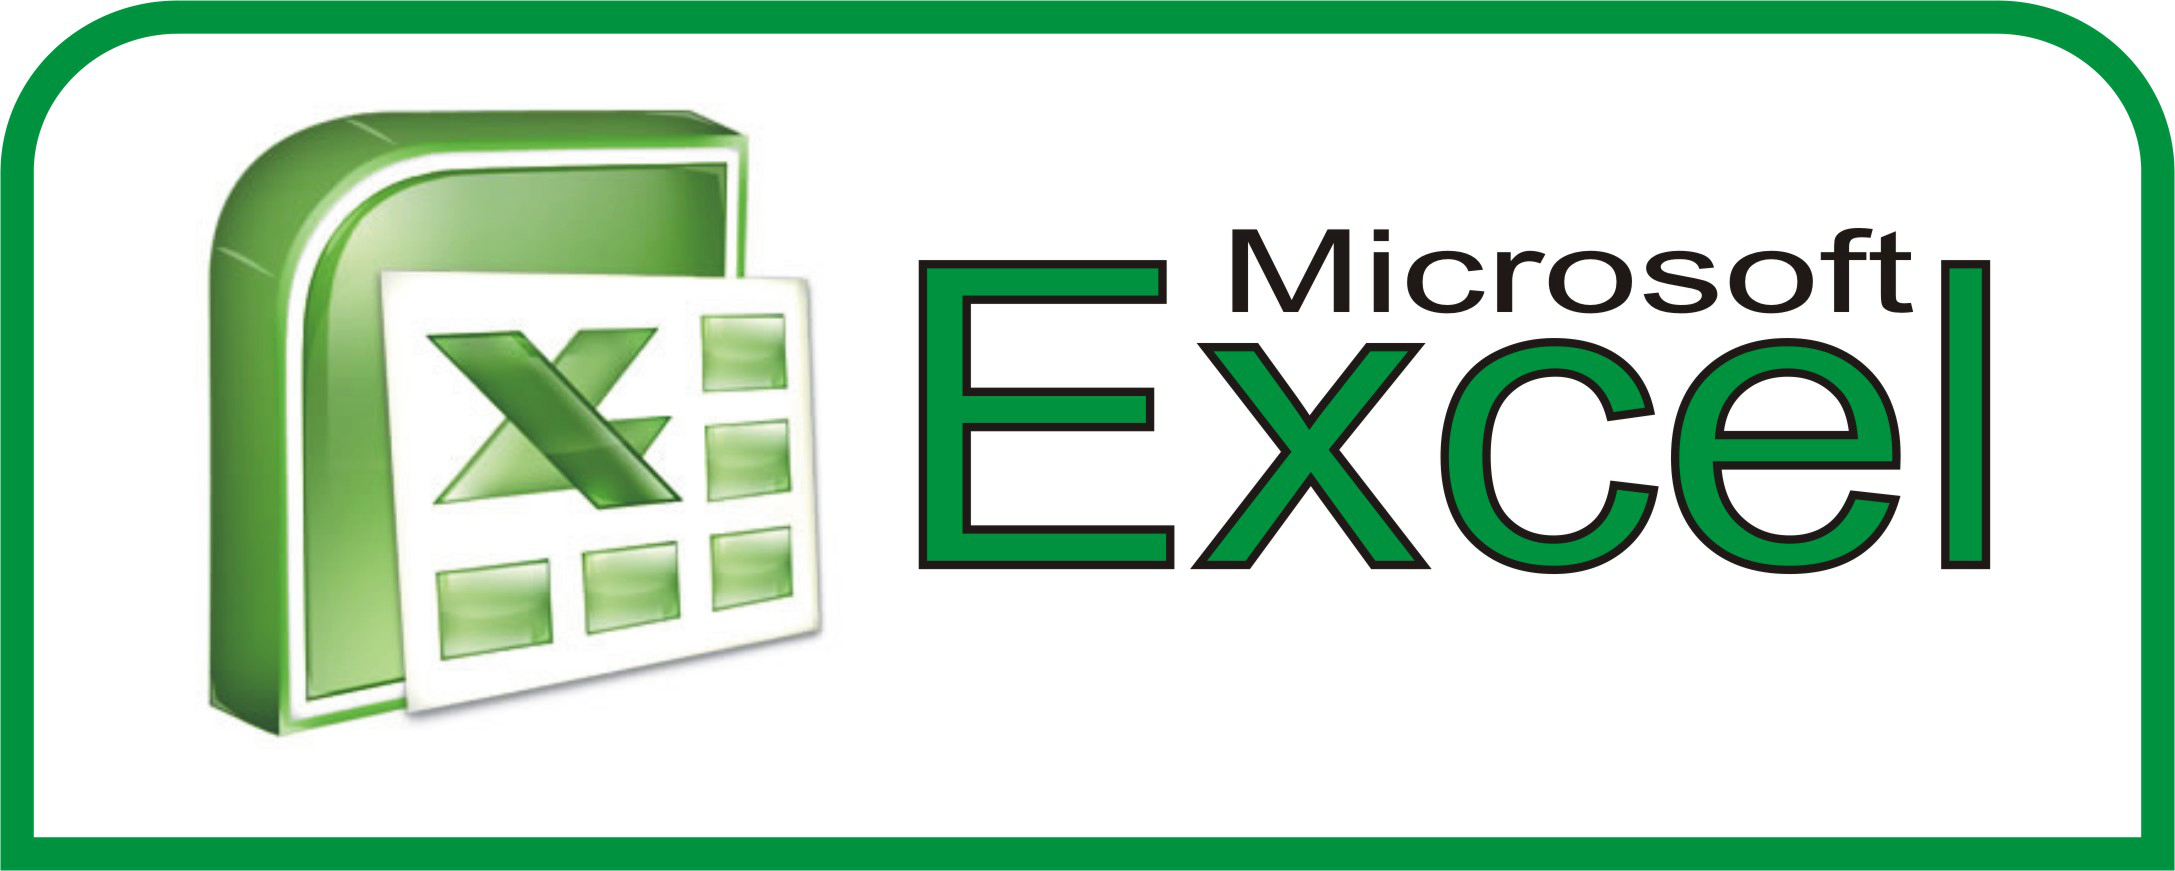 Ediblewildsus  Winsome  Excel Shortcuts You Probably Didnt Know About  Techdissected With Lovable Data Analysis On Excel Besides Learn Excel Fast Furthermore Calculate Percentage Increase In Excel With Beauteous Calculate Age Excel Also Find Circular Reference Excel  In Addition Excel Add And Army Body Fat Calculator Excel As Well As Identifying Duplicates In Excel Additionally Excel  Separate Windows From Techdissectedcom With Ediblewildsus  Lovable  Excel Shortcuts You Probably Didnt Know About  Techdissected With Beauteous Data Analysis On Excel Besides Learn Excel Fast Furthermore Calculate Percentage Increase In Excel And Winsome Calculate Age Excel Also Find Circular Reference Excel  In Addition Excel Add From Techdissectedcom